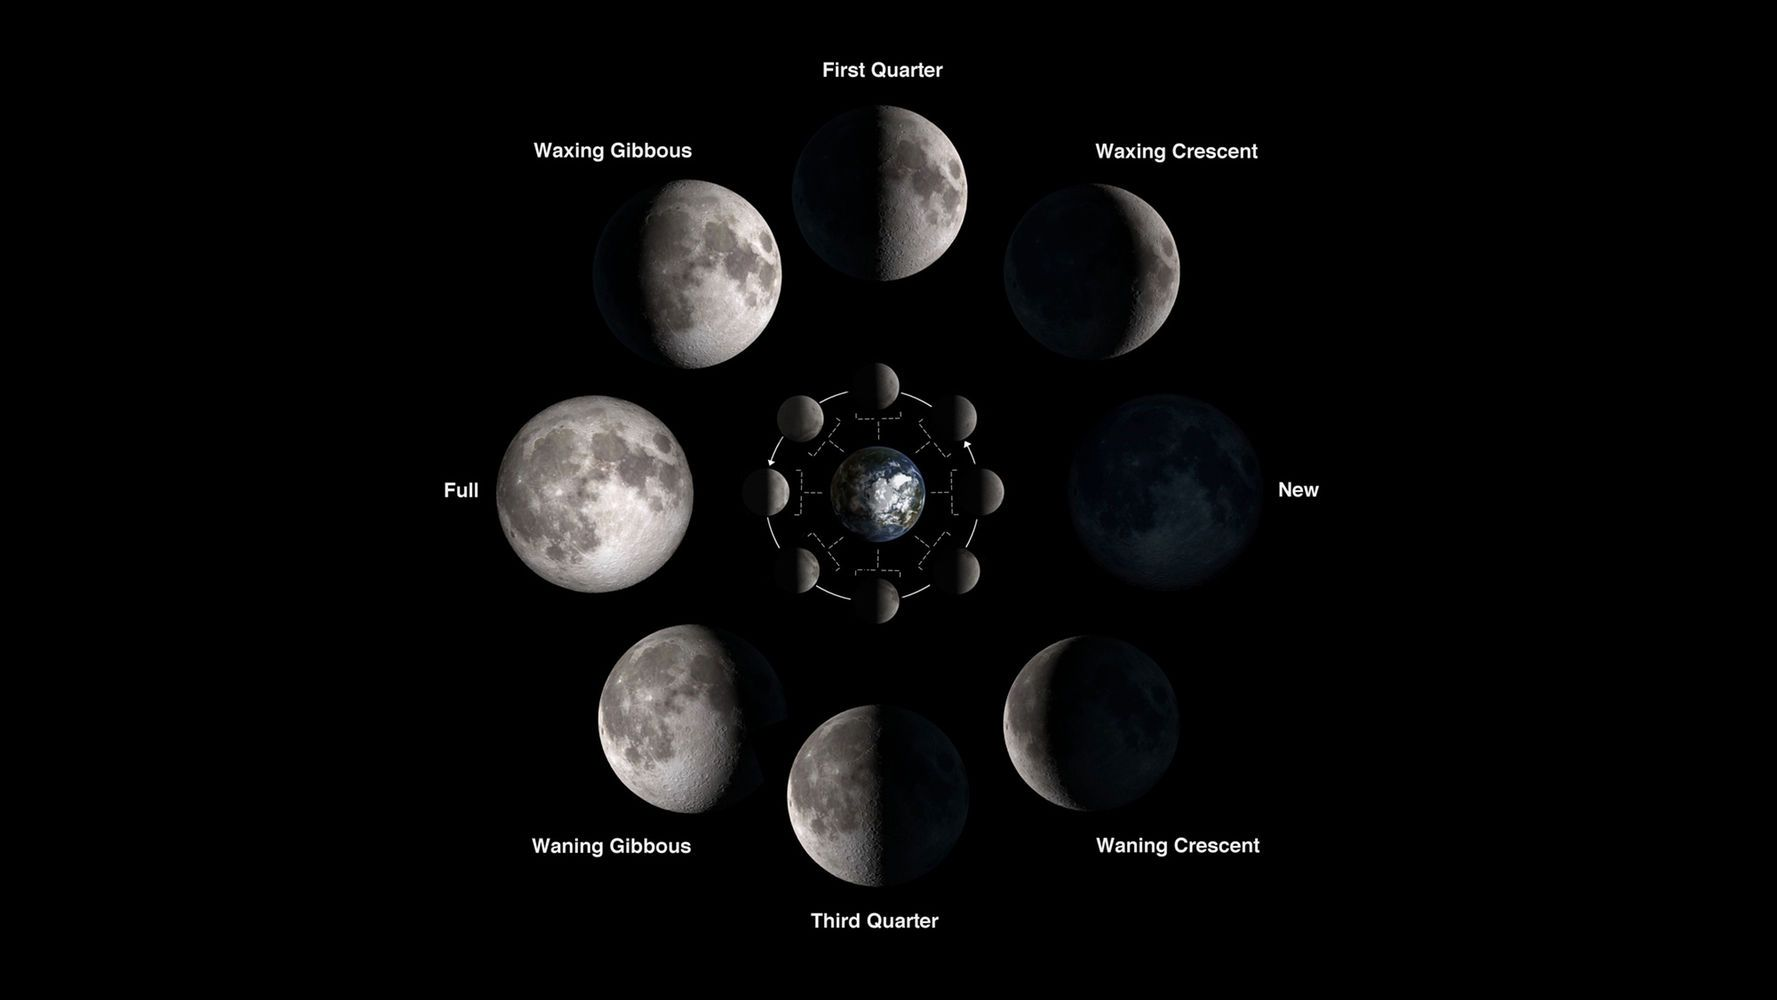 Saturday Is Observe The Moon Night But You Should View It All Month Long With Images Moon Calendar Nasa Moon Moon Phase Calendar